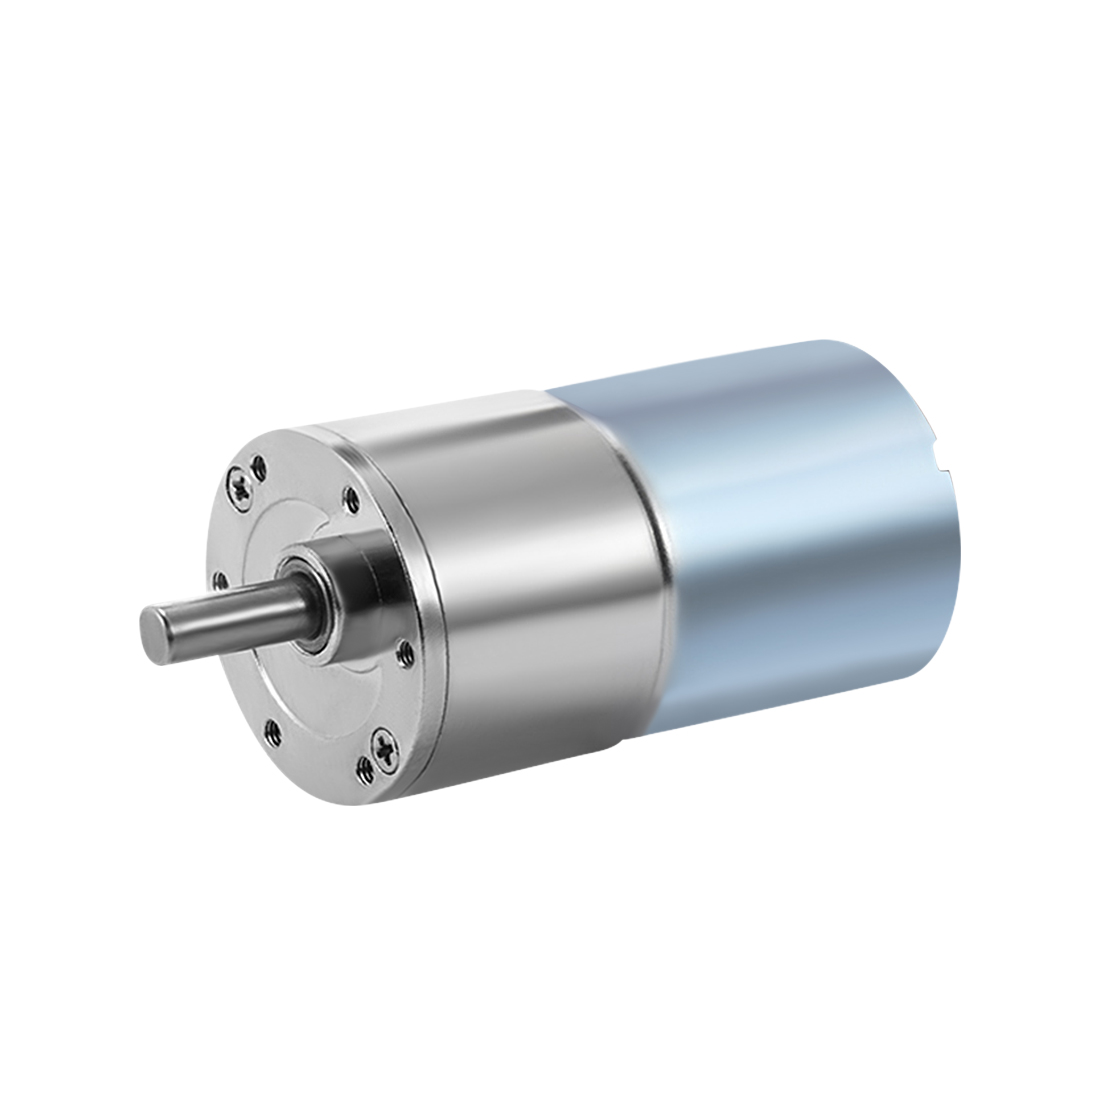 DC 12V 1000RPM Micro Gear Box Motor Speed Reduction Electric Gearbox Eccentric Output Shaft